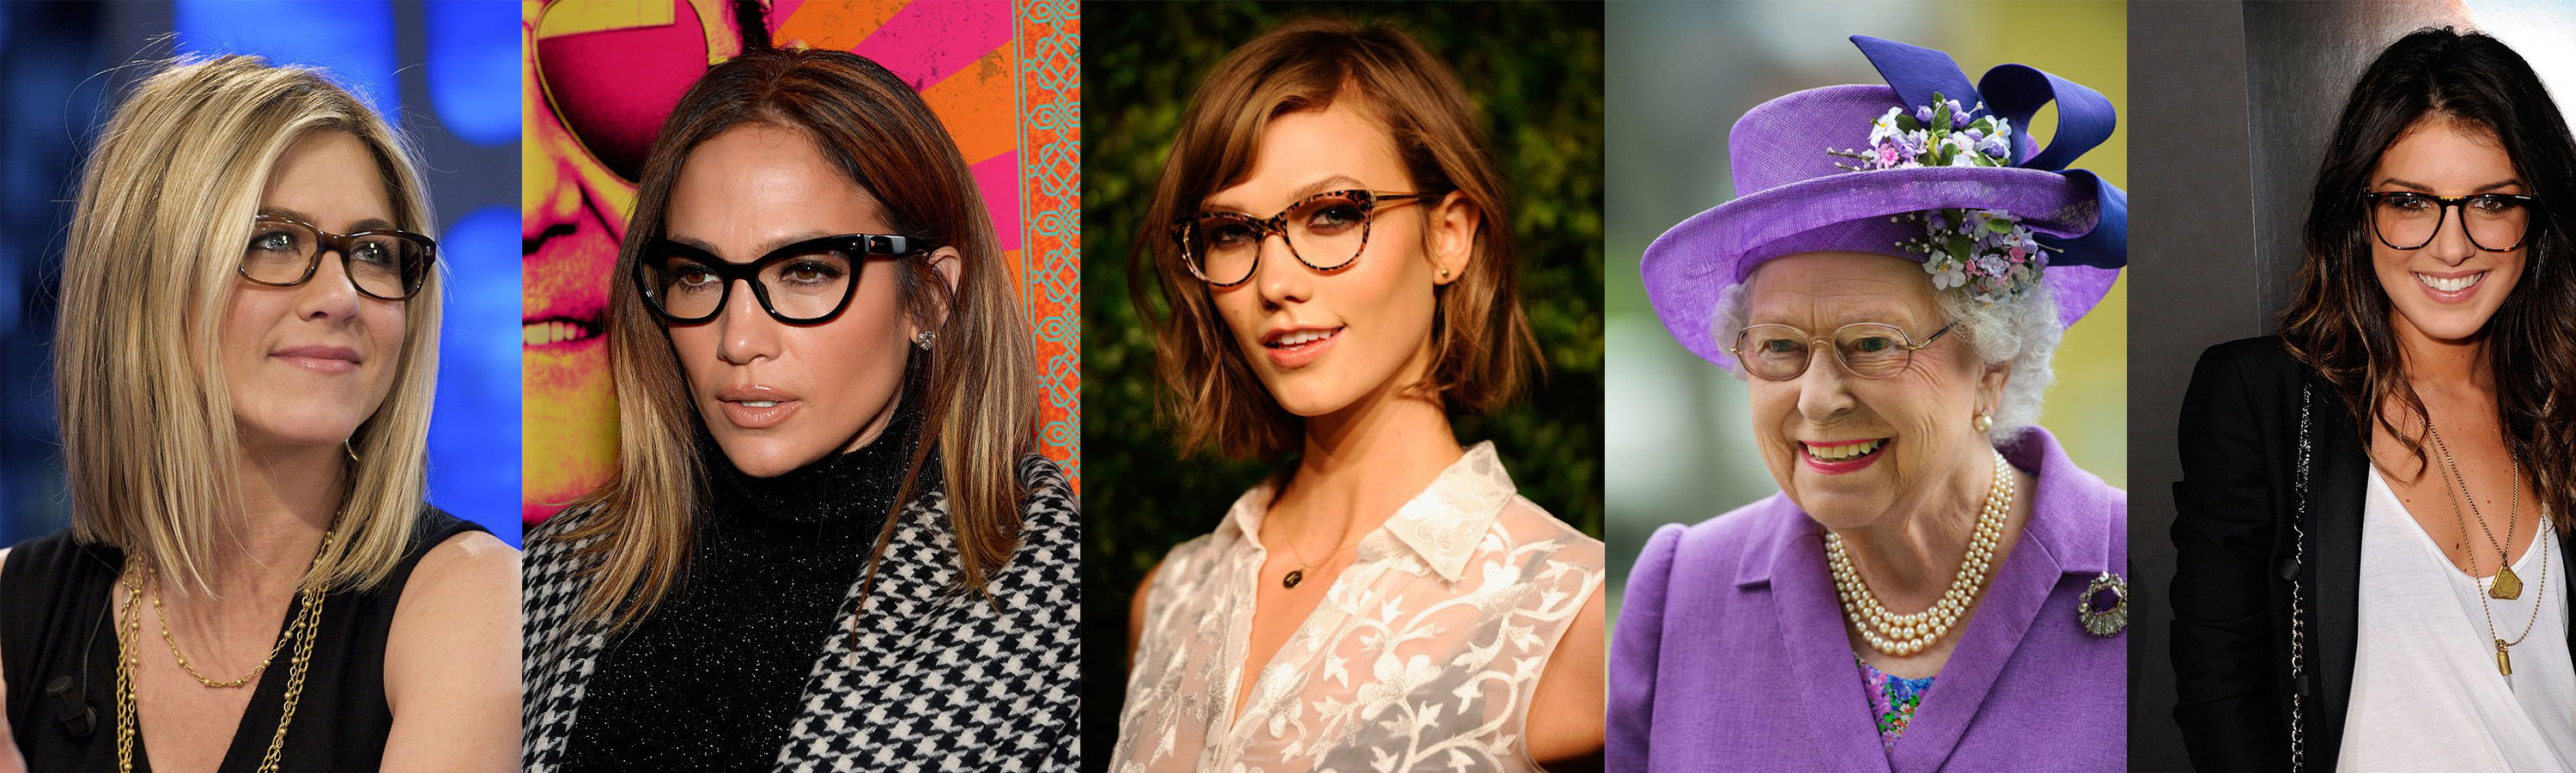 19 Celebs With Serious Specs Appeal